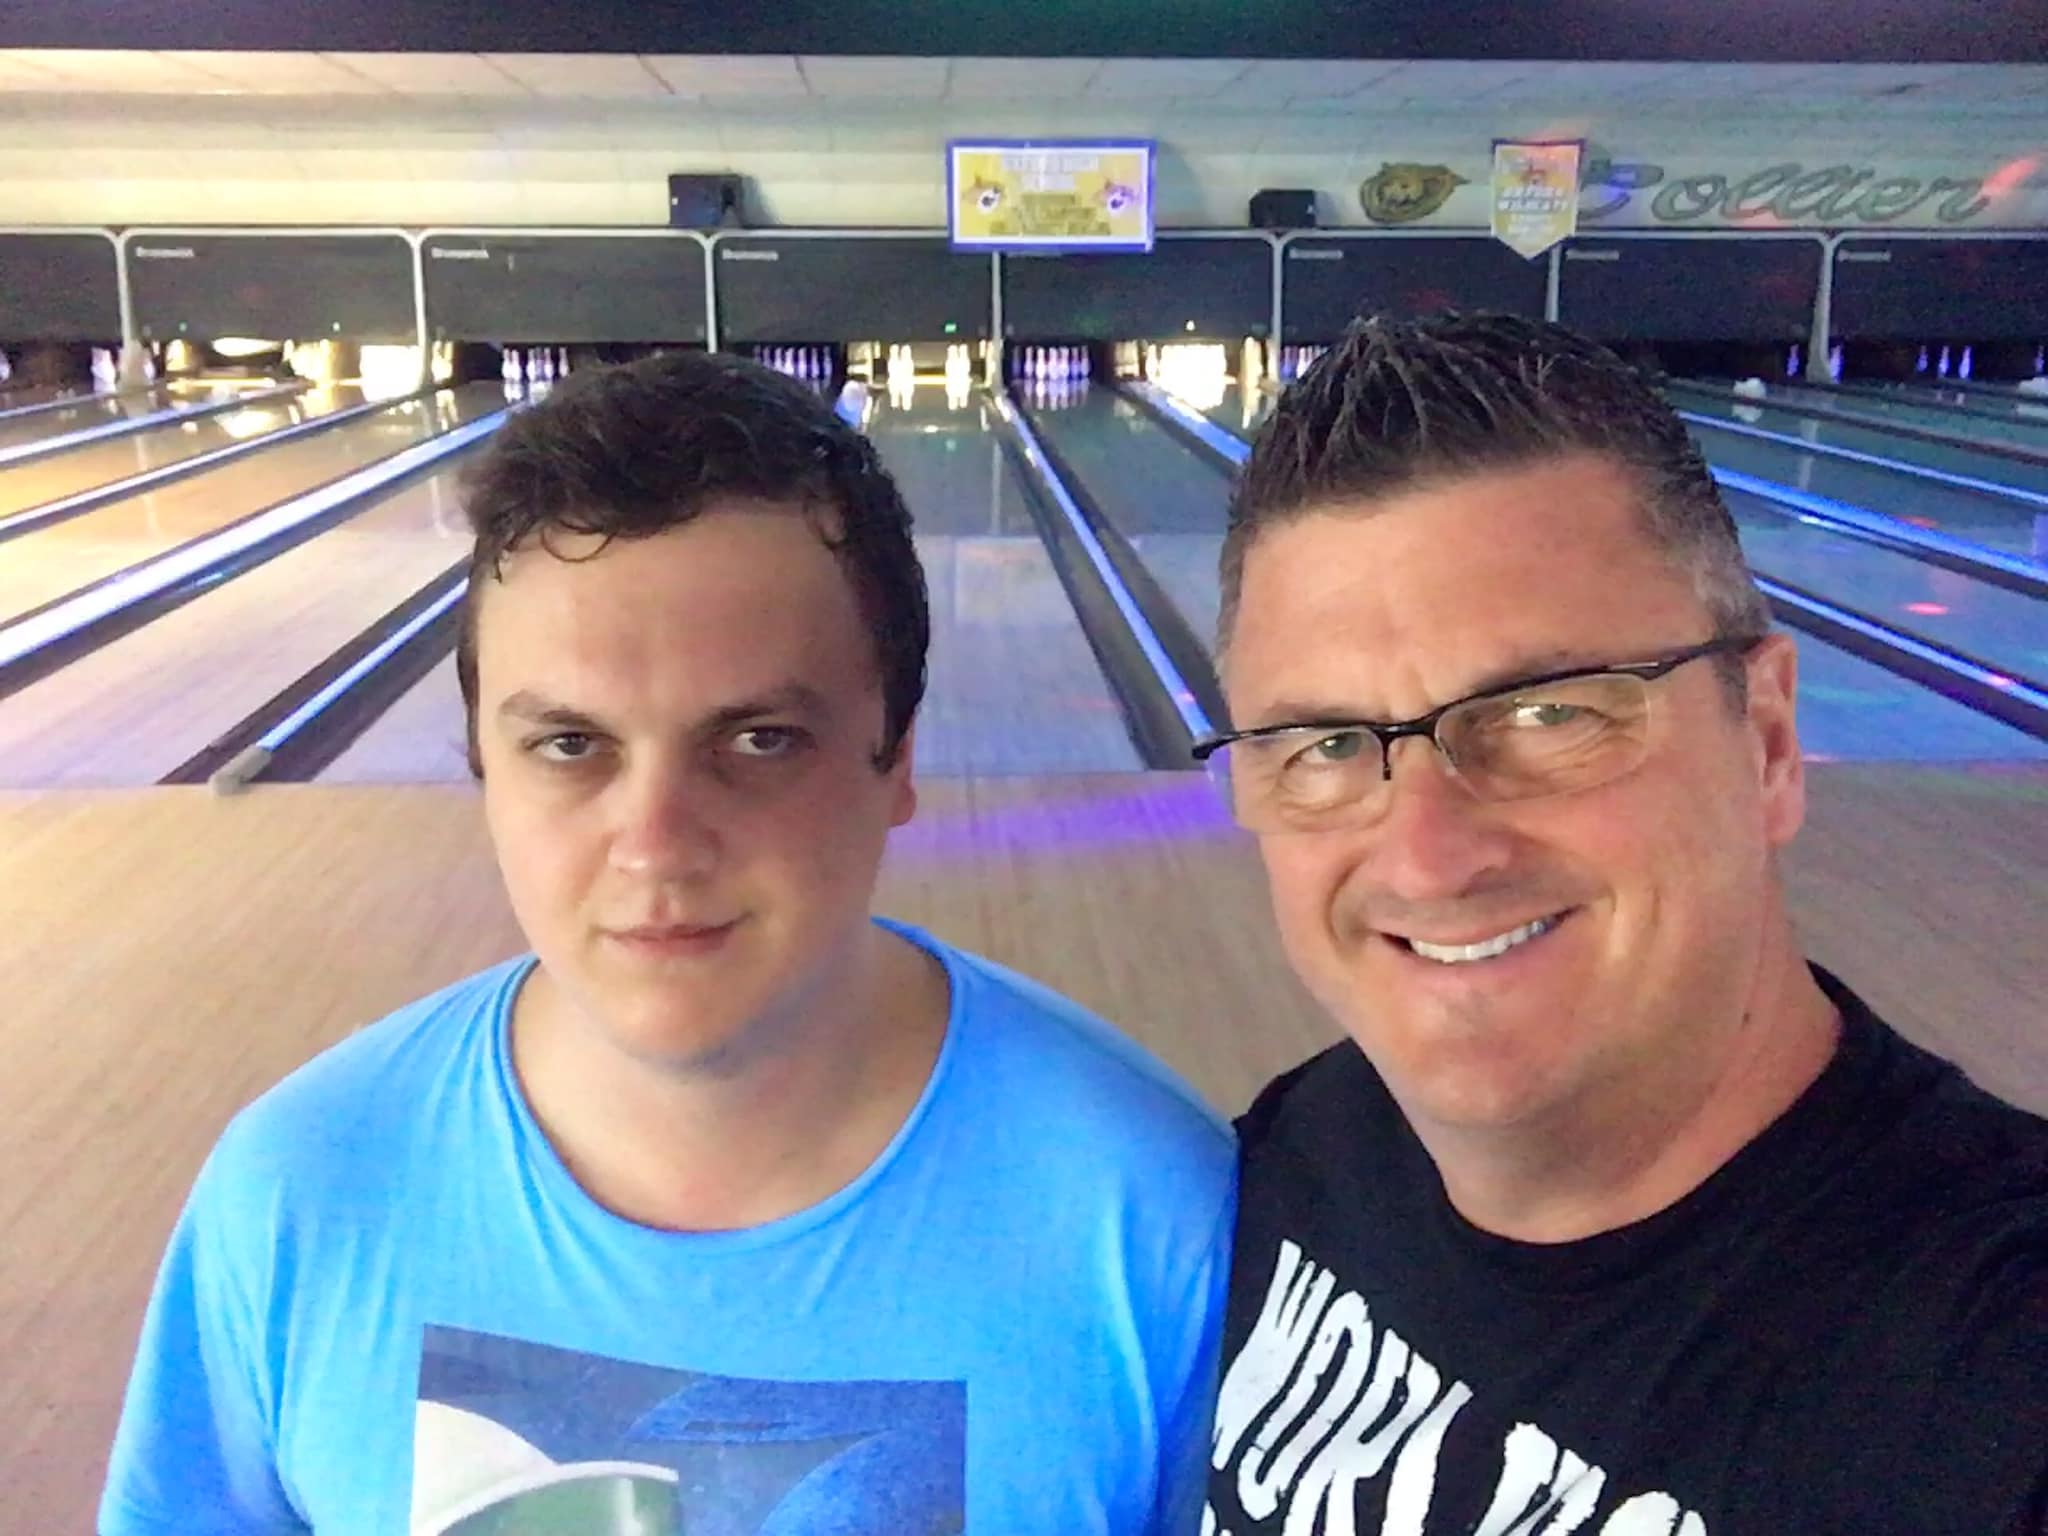 Chris Foster with son at bowling alley